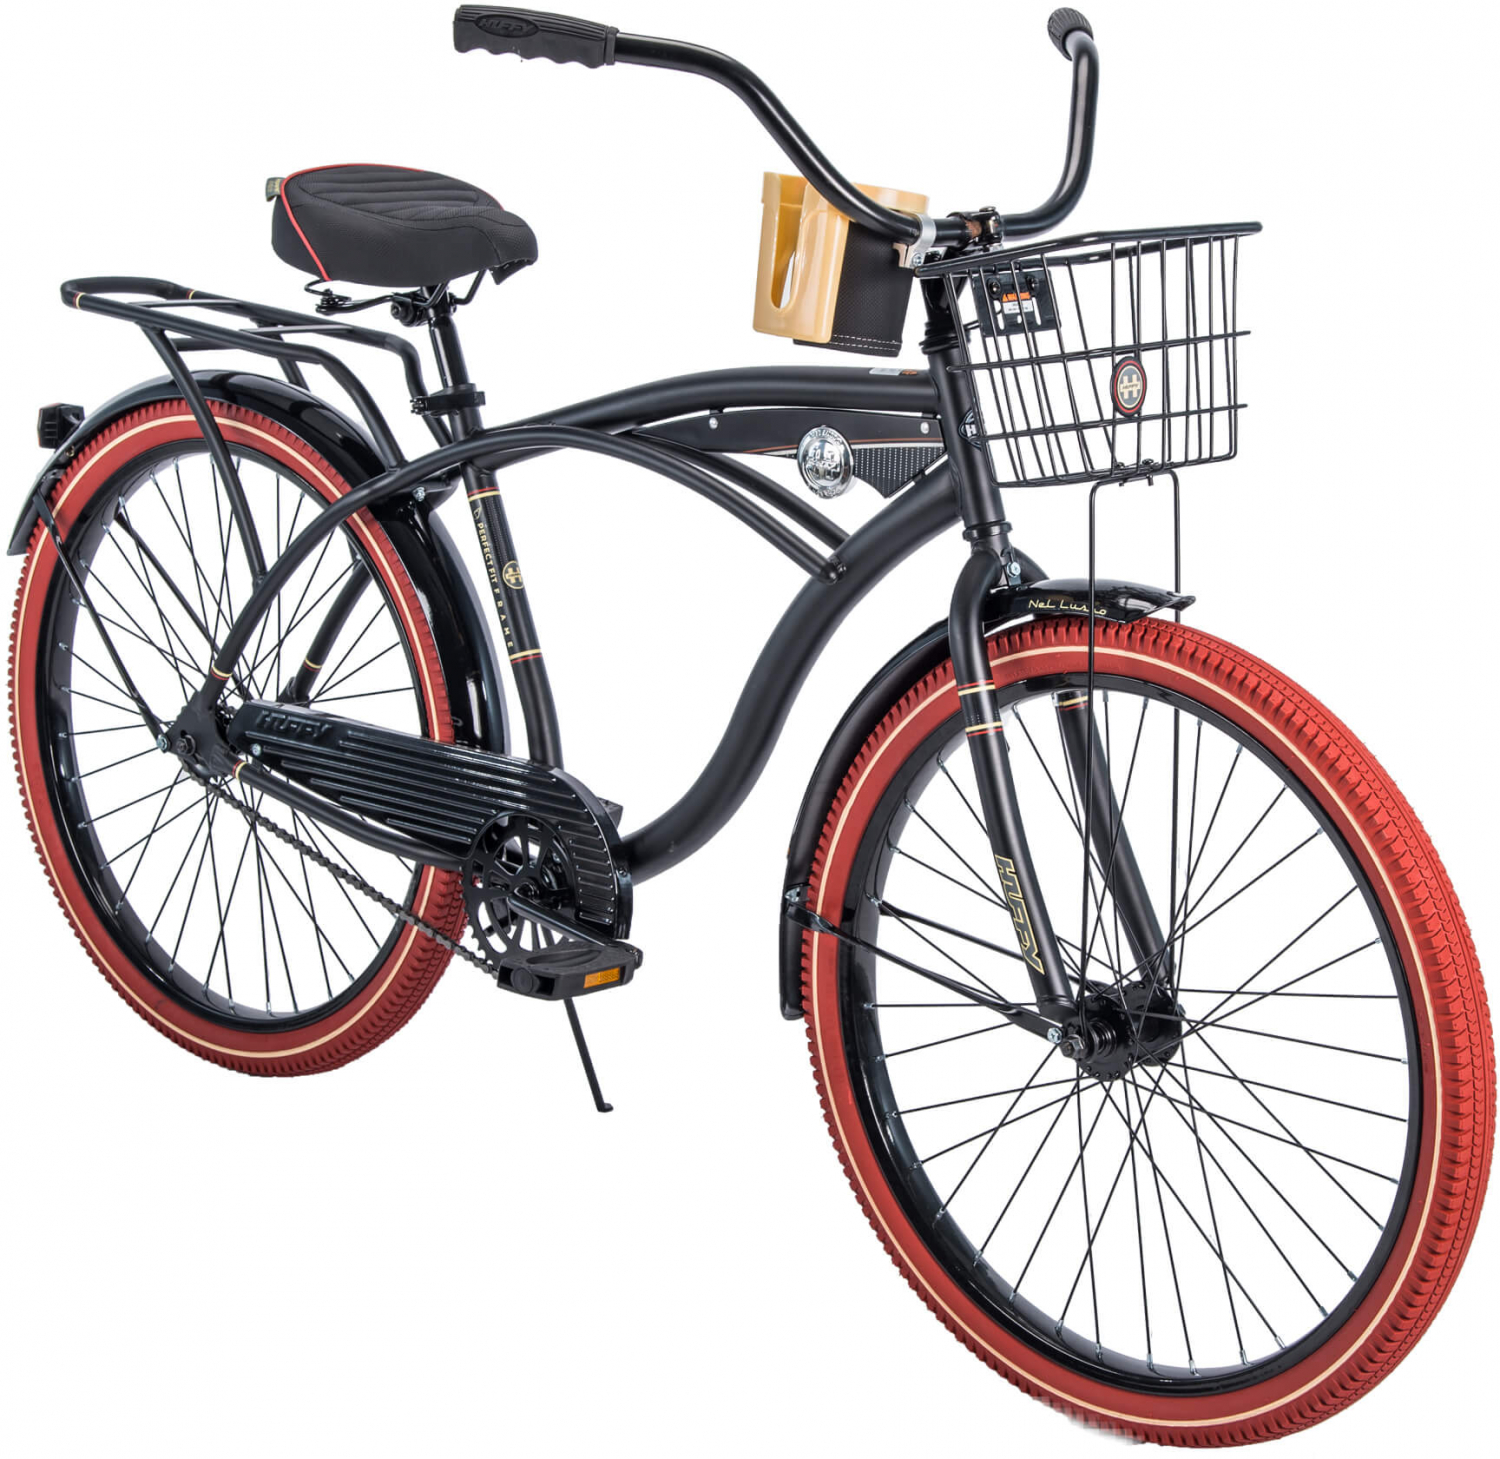 "Huffy 26/"" Nel Lusso Cruiser Perfect Fit Frame Men/'s Bike Beach Bicycle Outdoor"